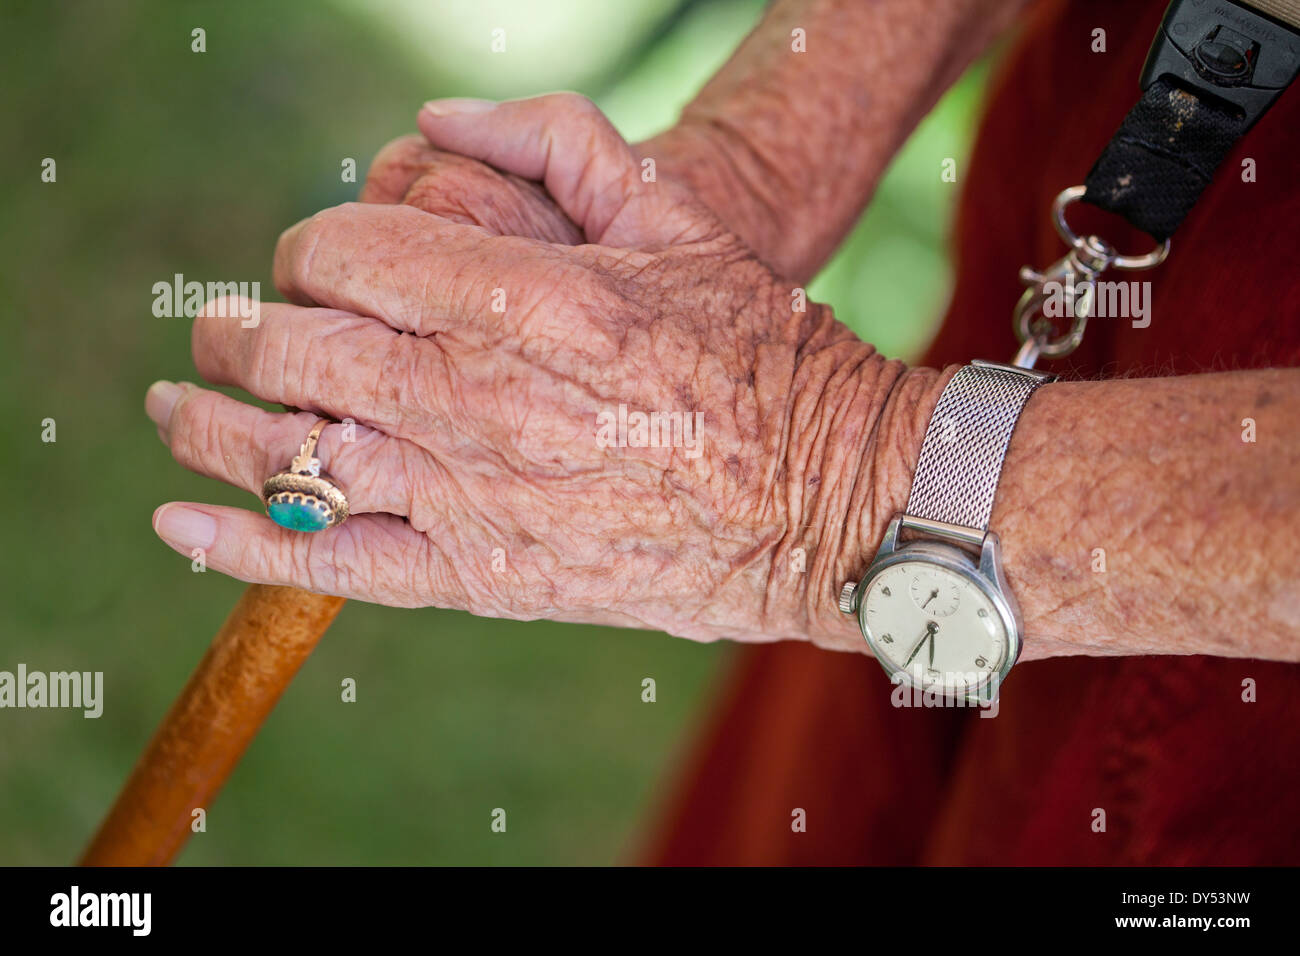 Close up of senior woman's hands holding walking stick Stock Photo